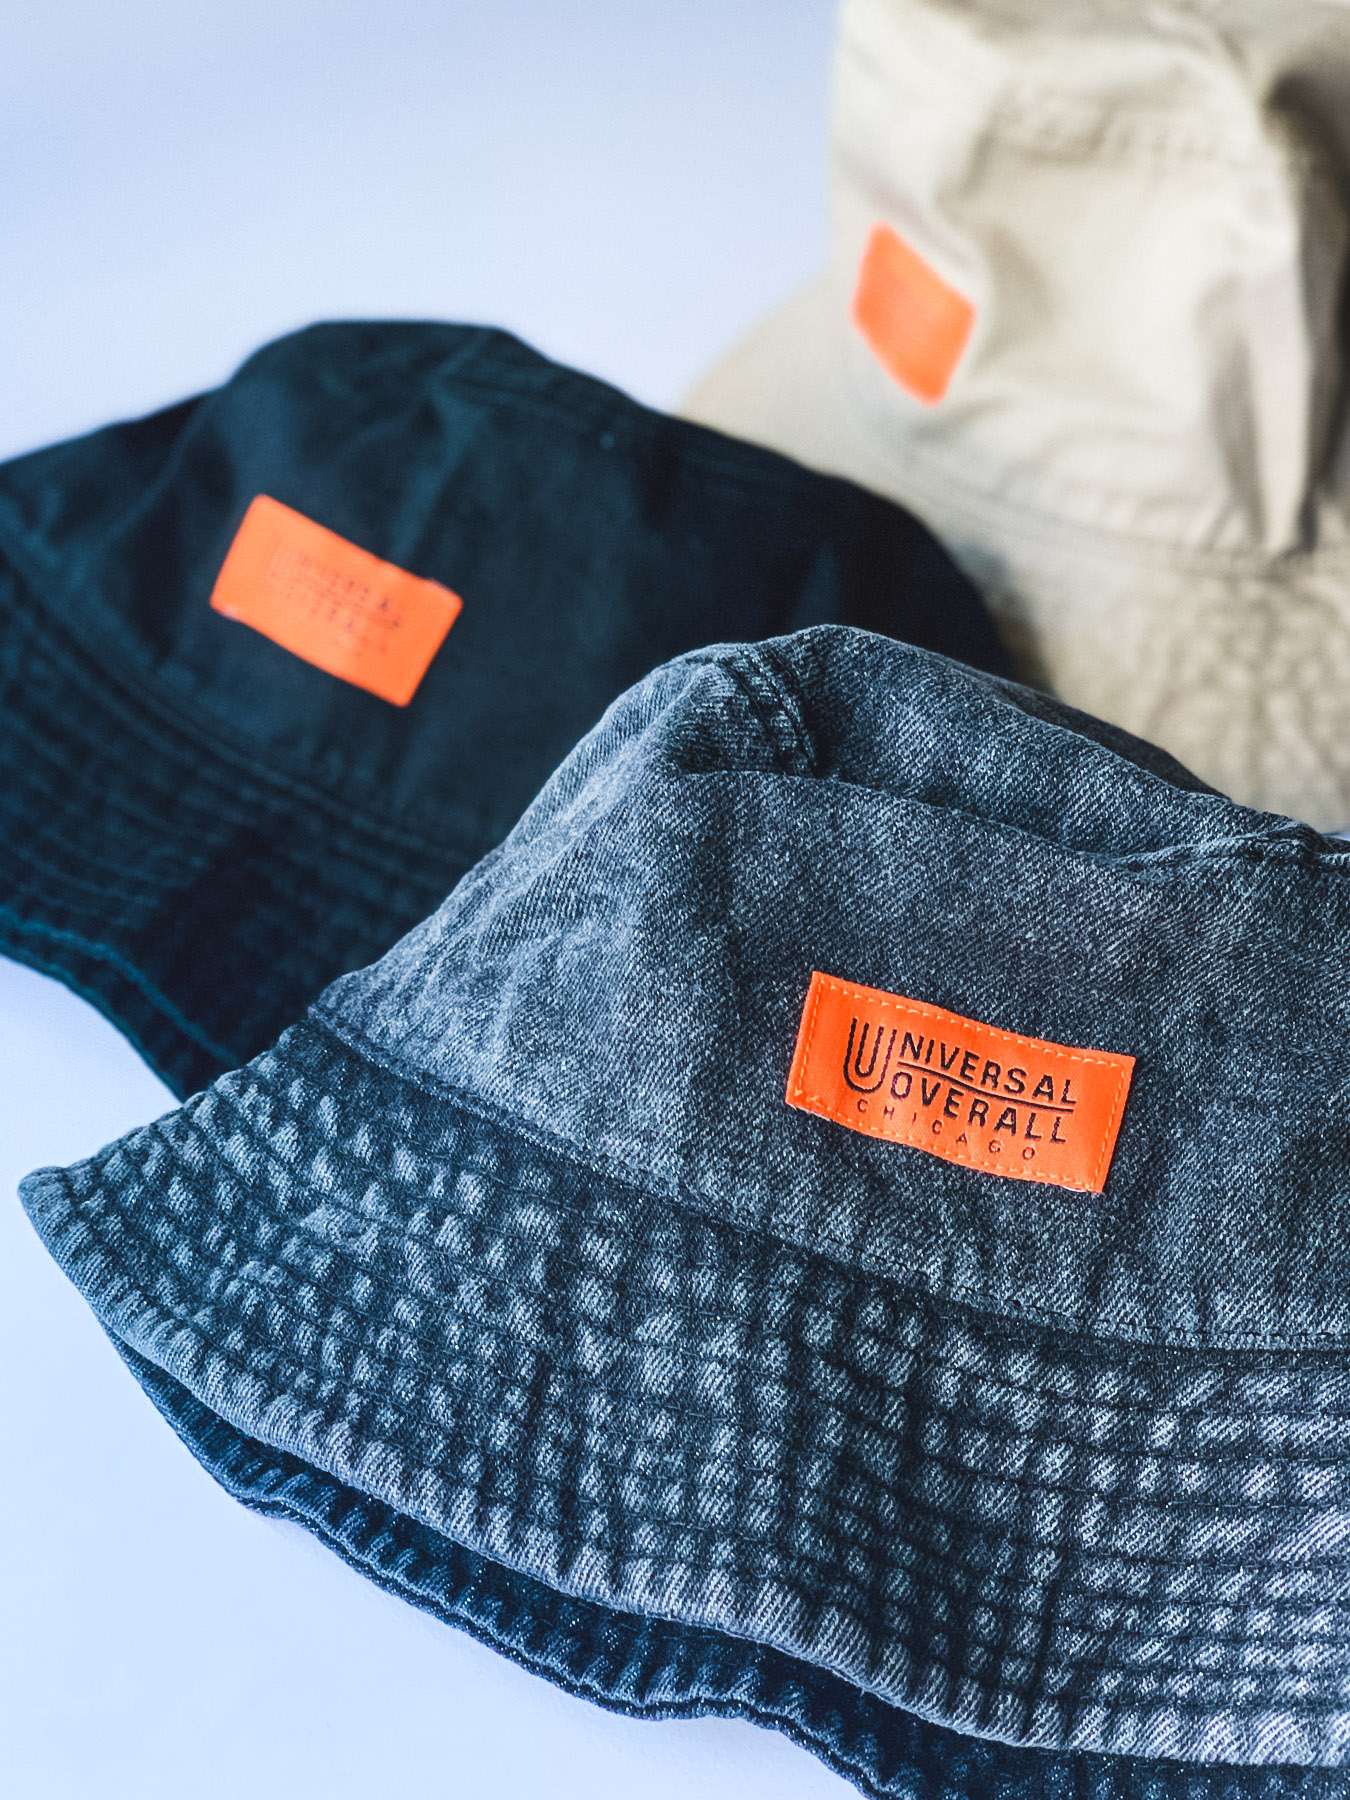 UNIVERSAL OVERALL x Newhattanバケットハット